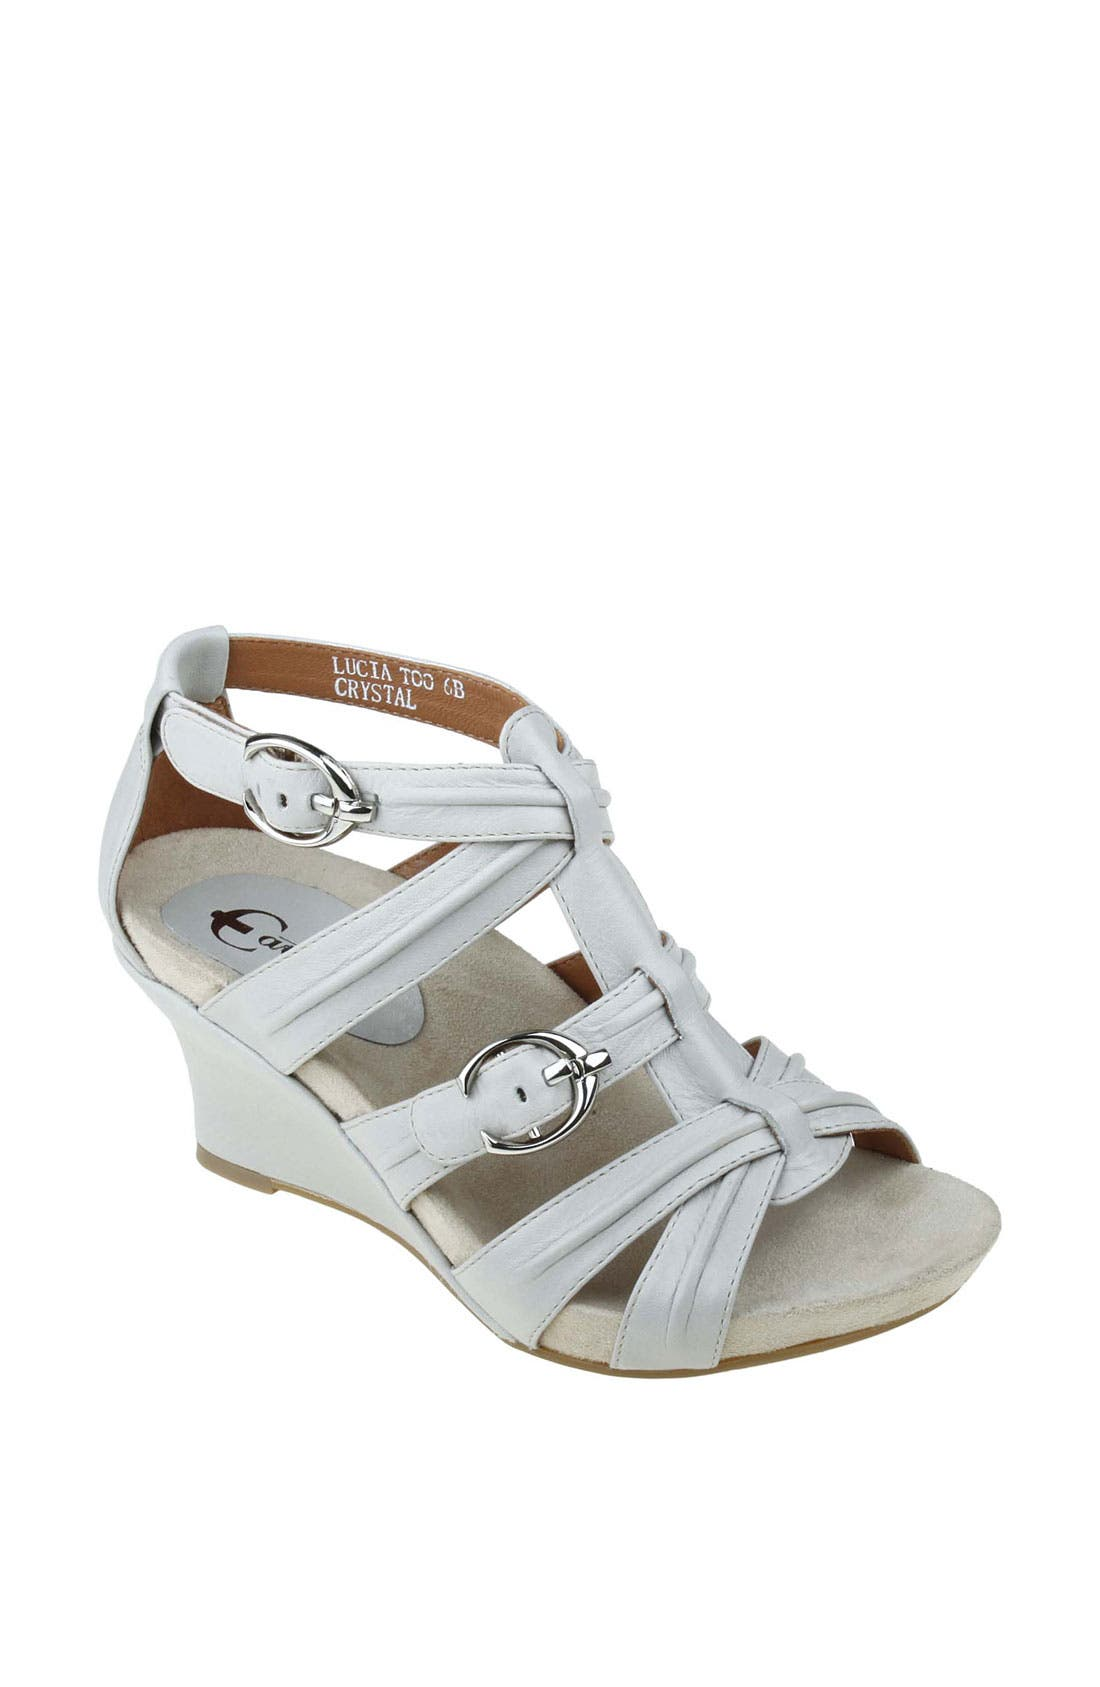 Alternate Image 1 Selected - Earthies® 'Lucia Too' Sandal